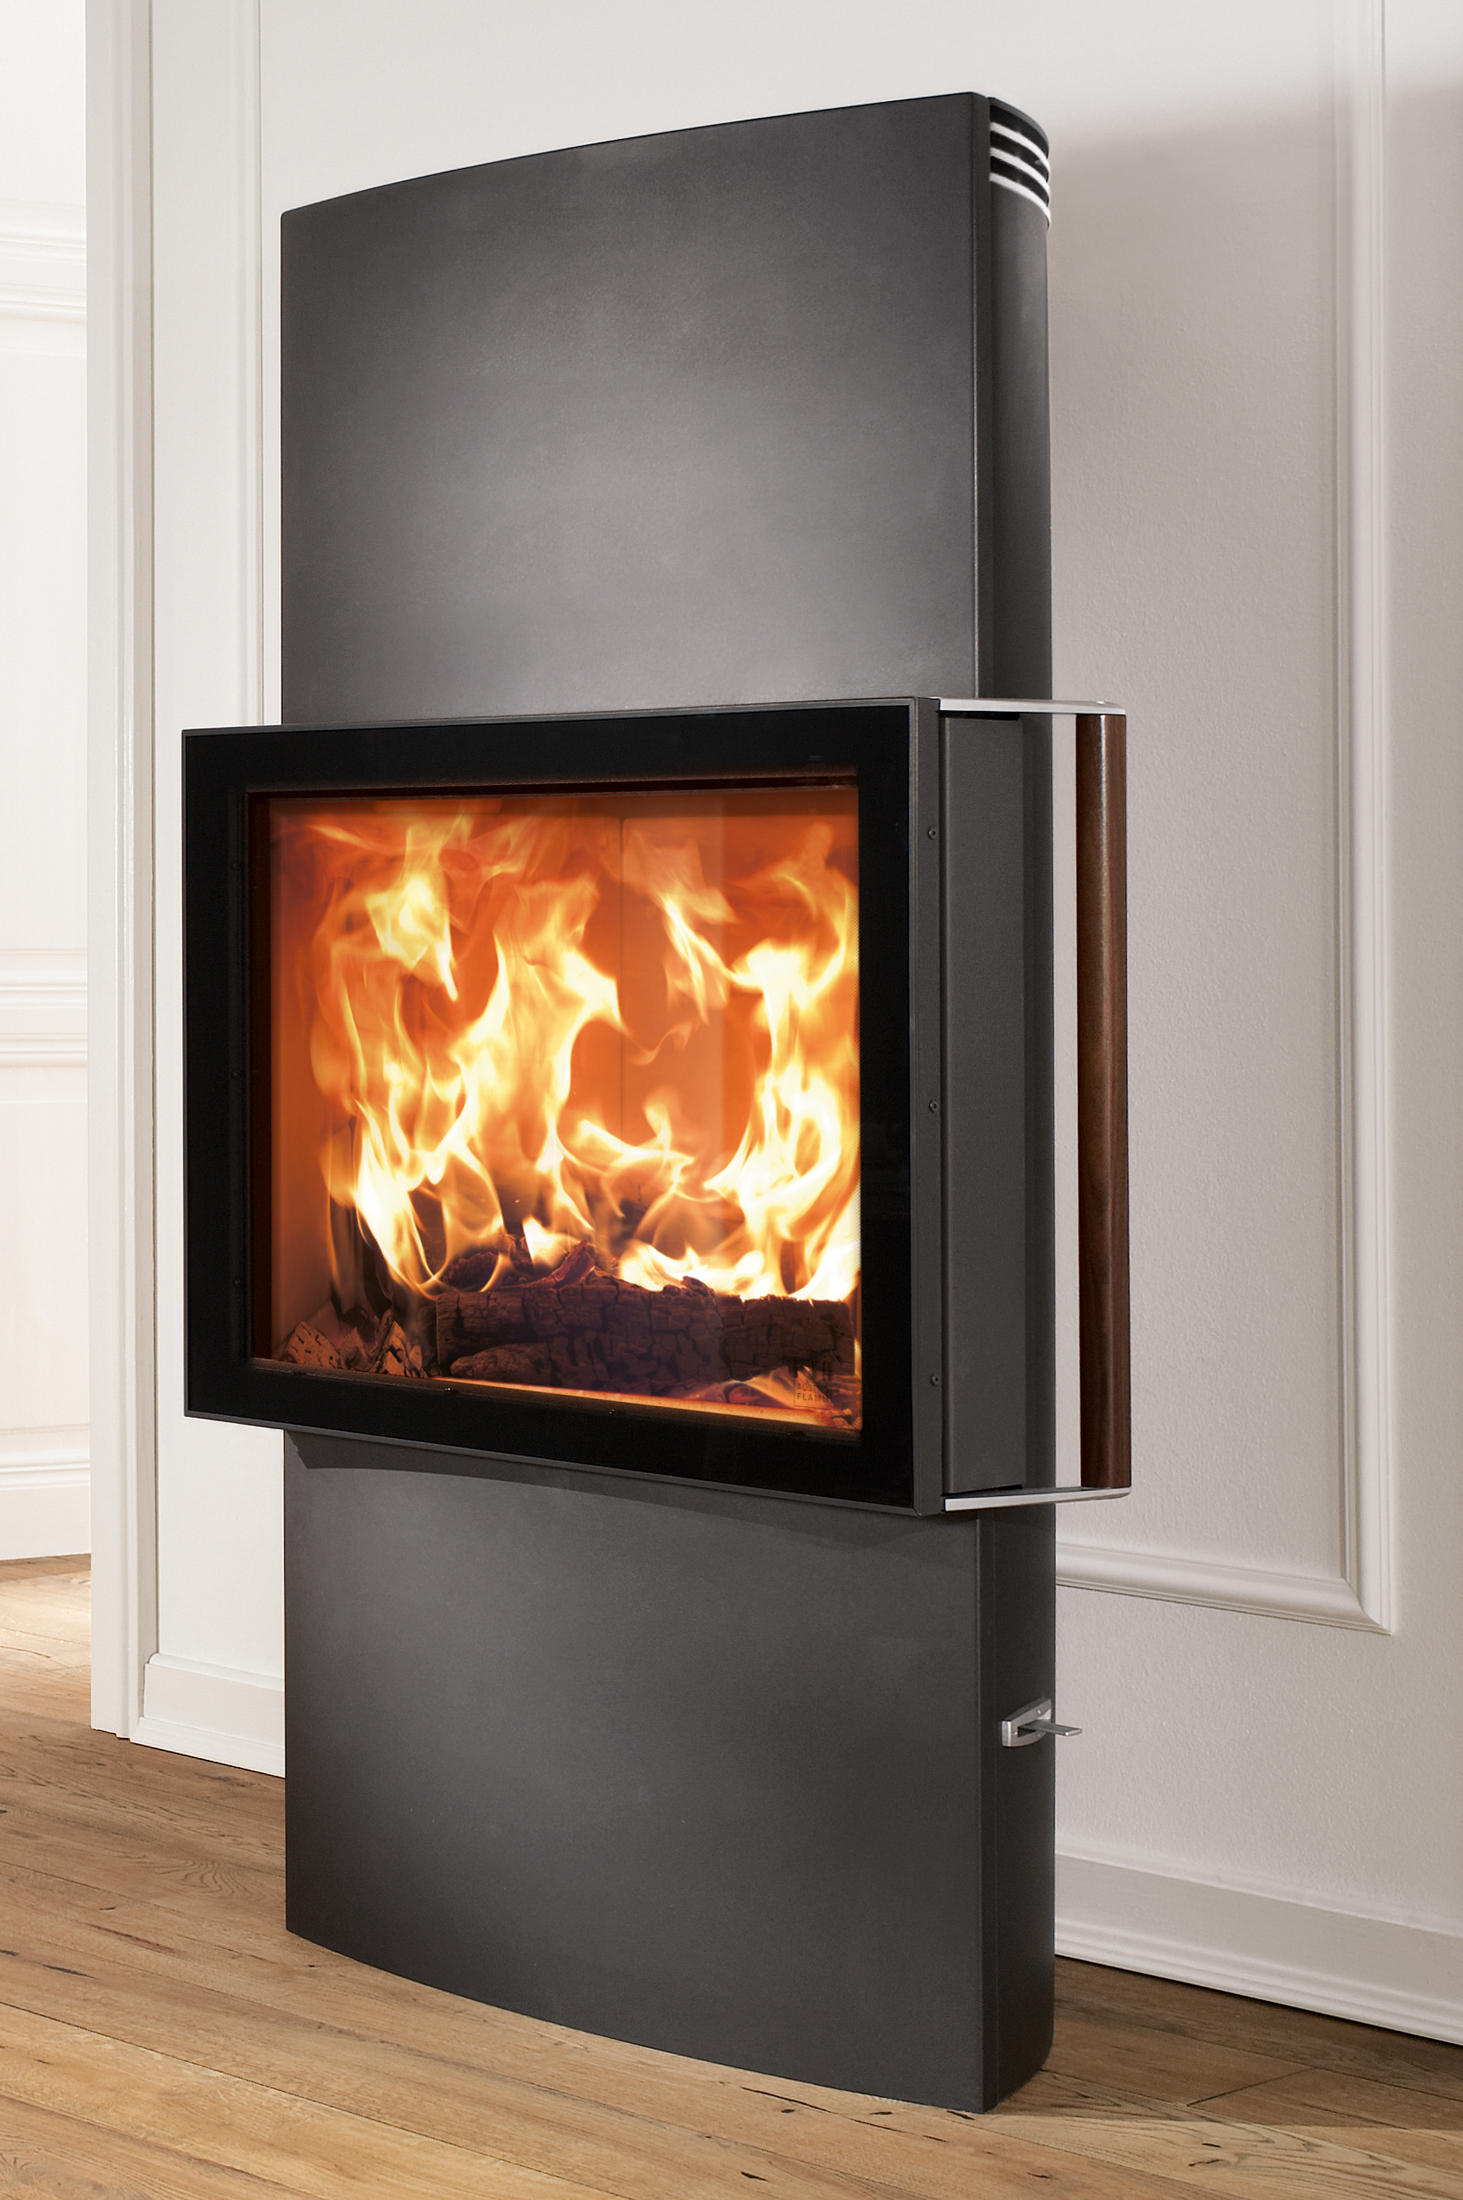 Kaminofen Austroflamm Pallas Back Lounge Lounge Xtra Stoves From Austroflamm Architonic